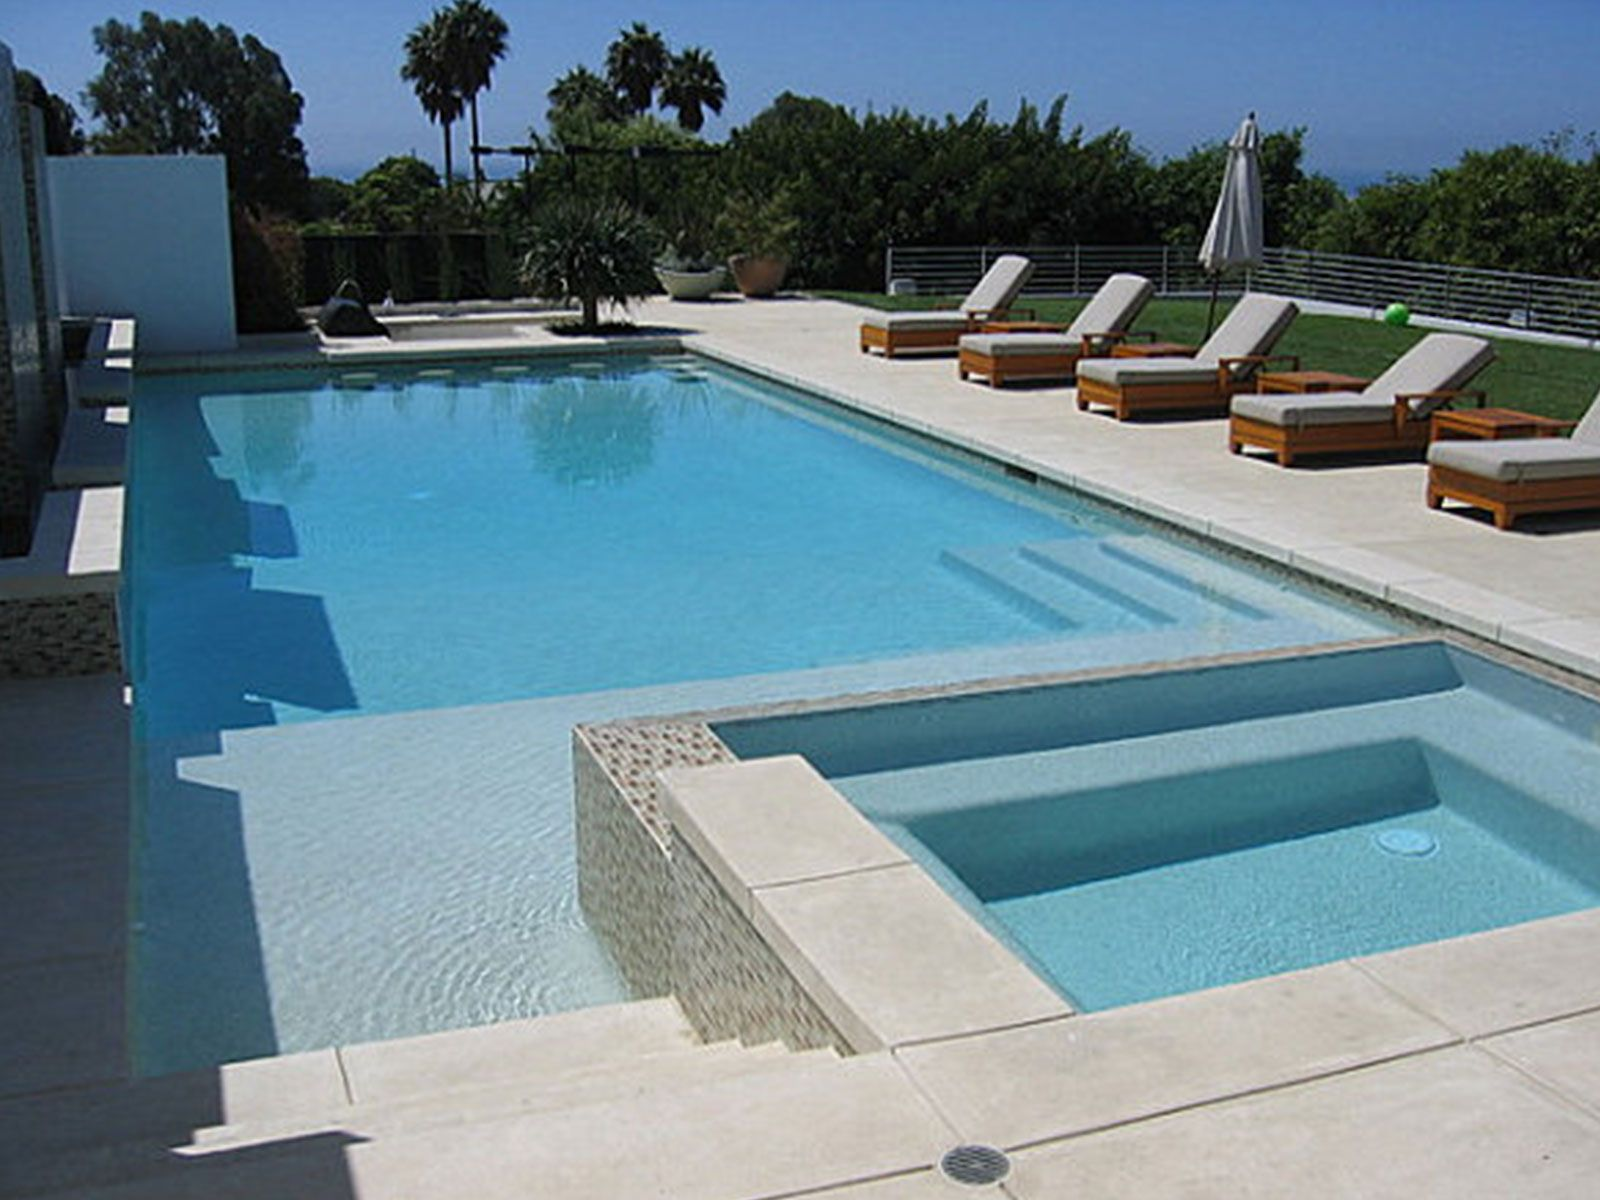 Simple swimming pool design image modern creative swimming for Backyard pool planner